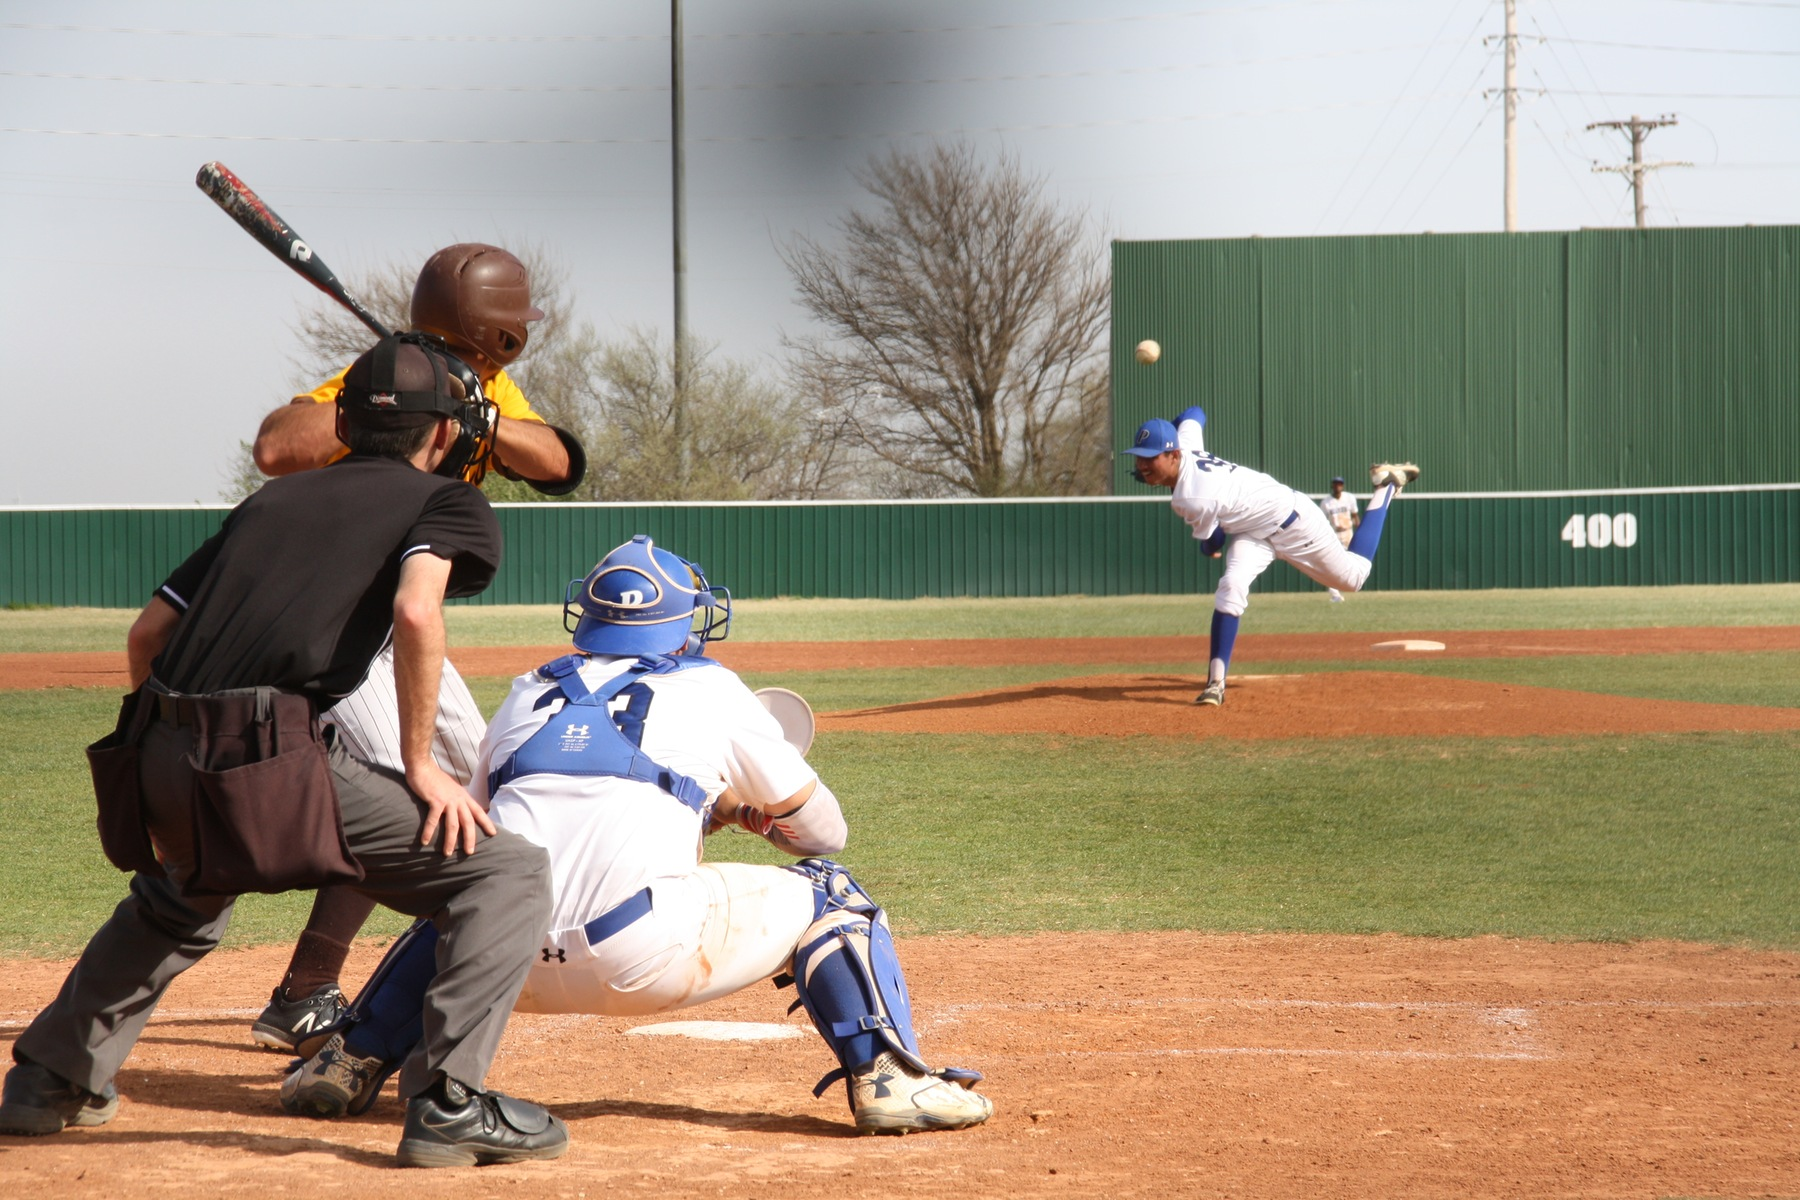 Broncbusters beat the wind and Pratt in critical conference series